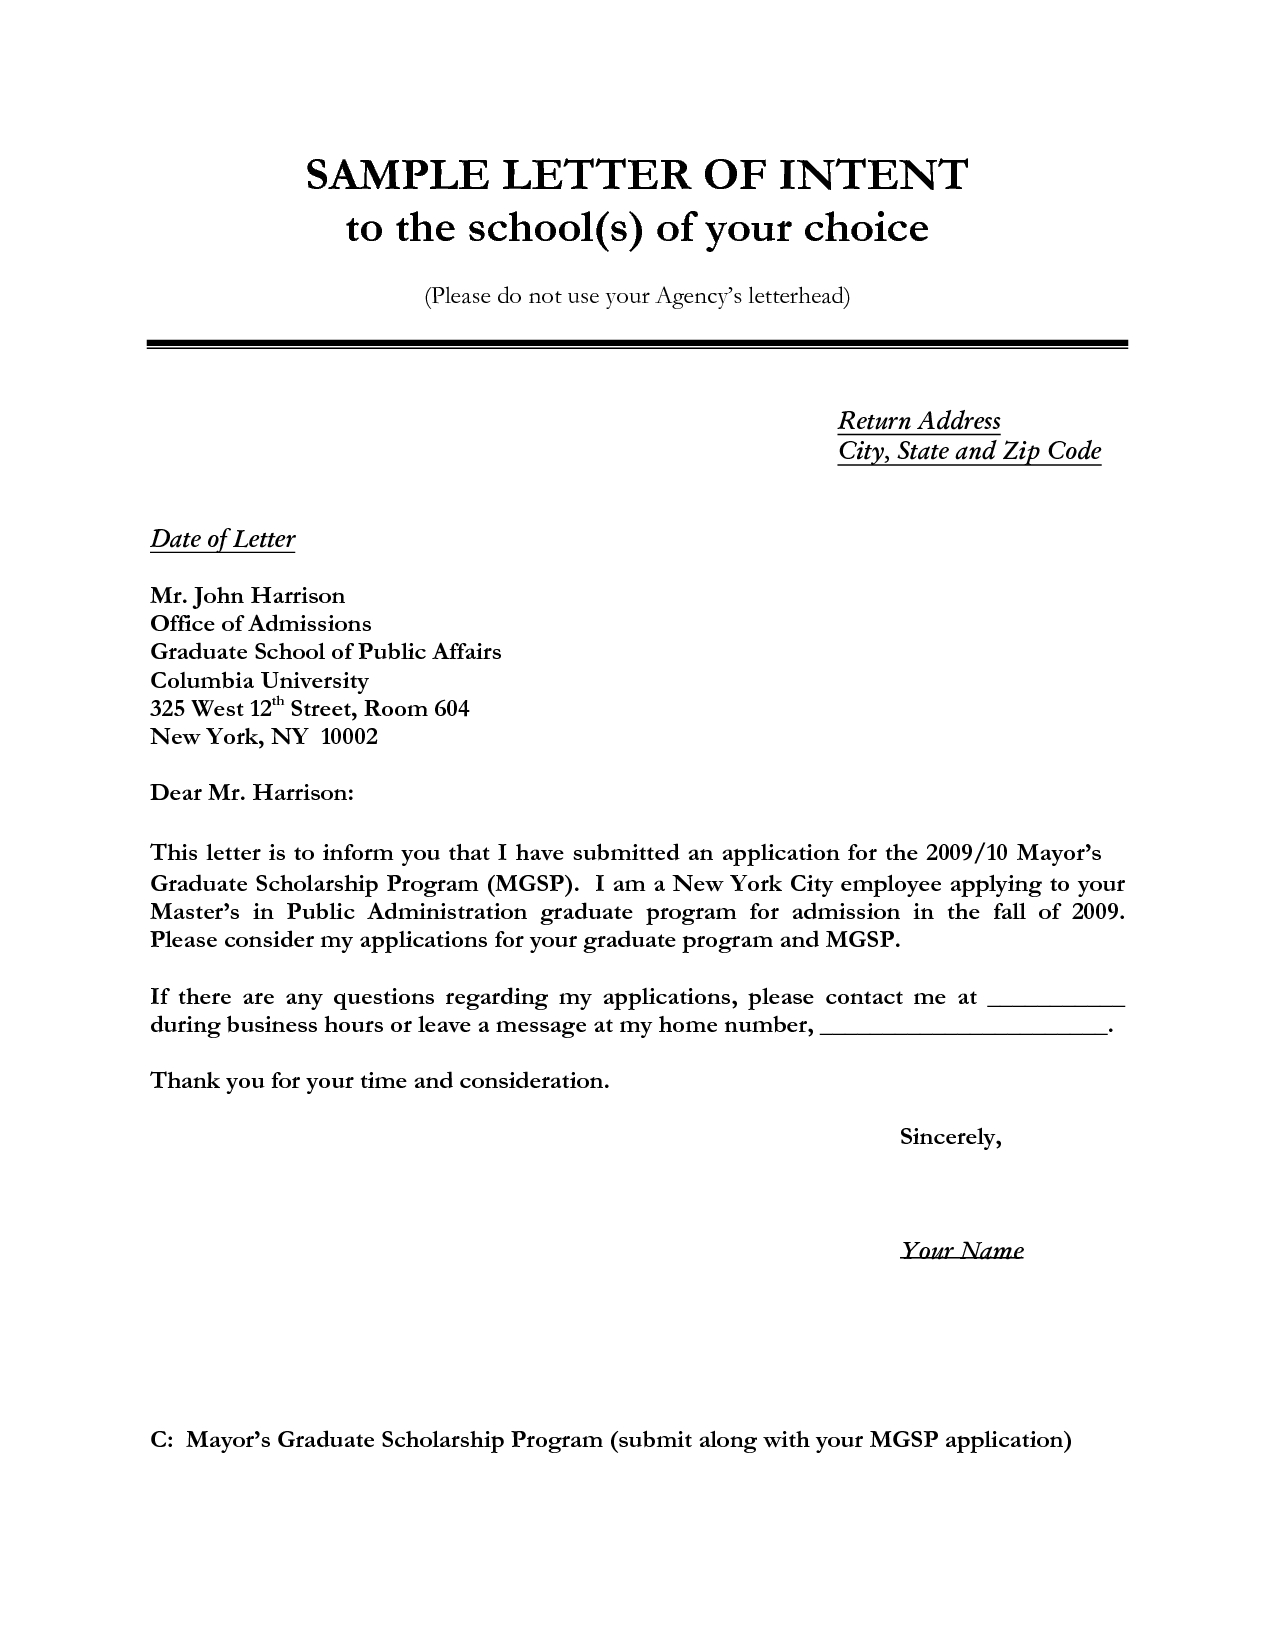 Proof Of Rent Letter Template - Letter Of Intent Sample